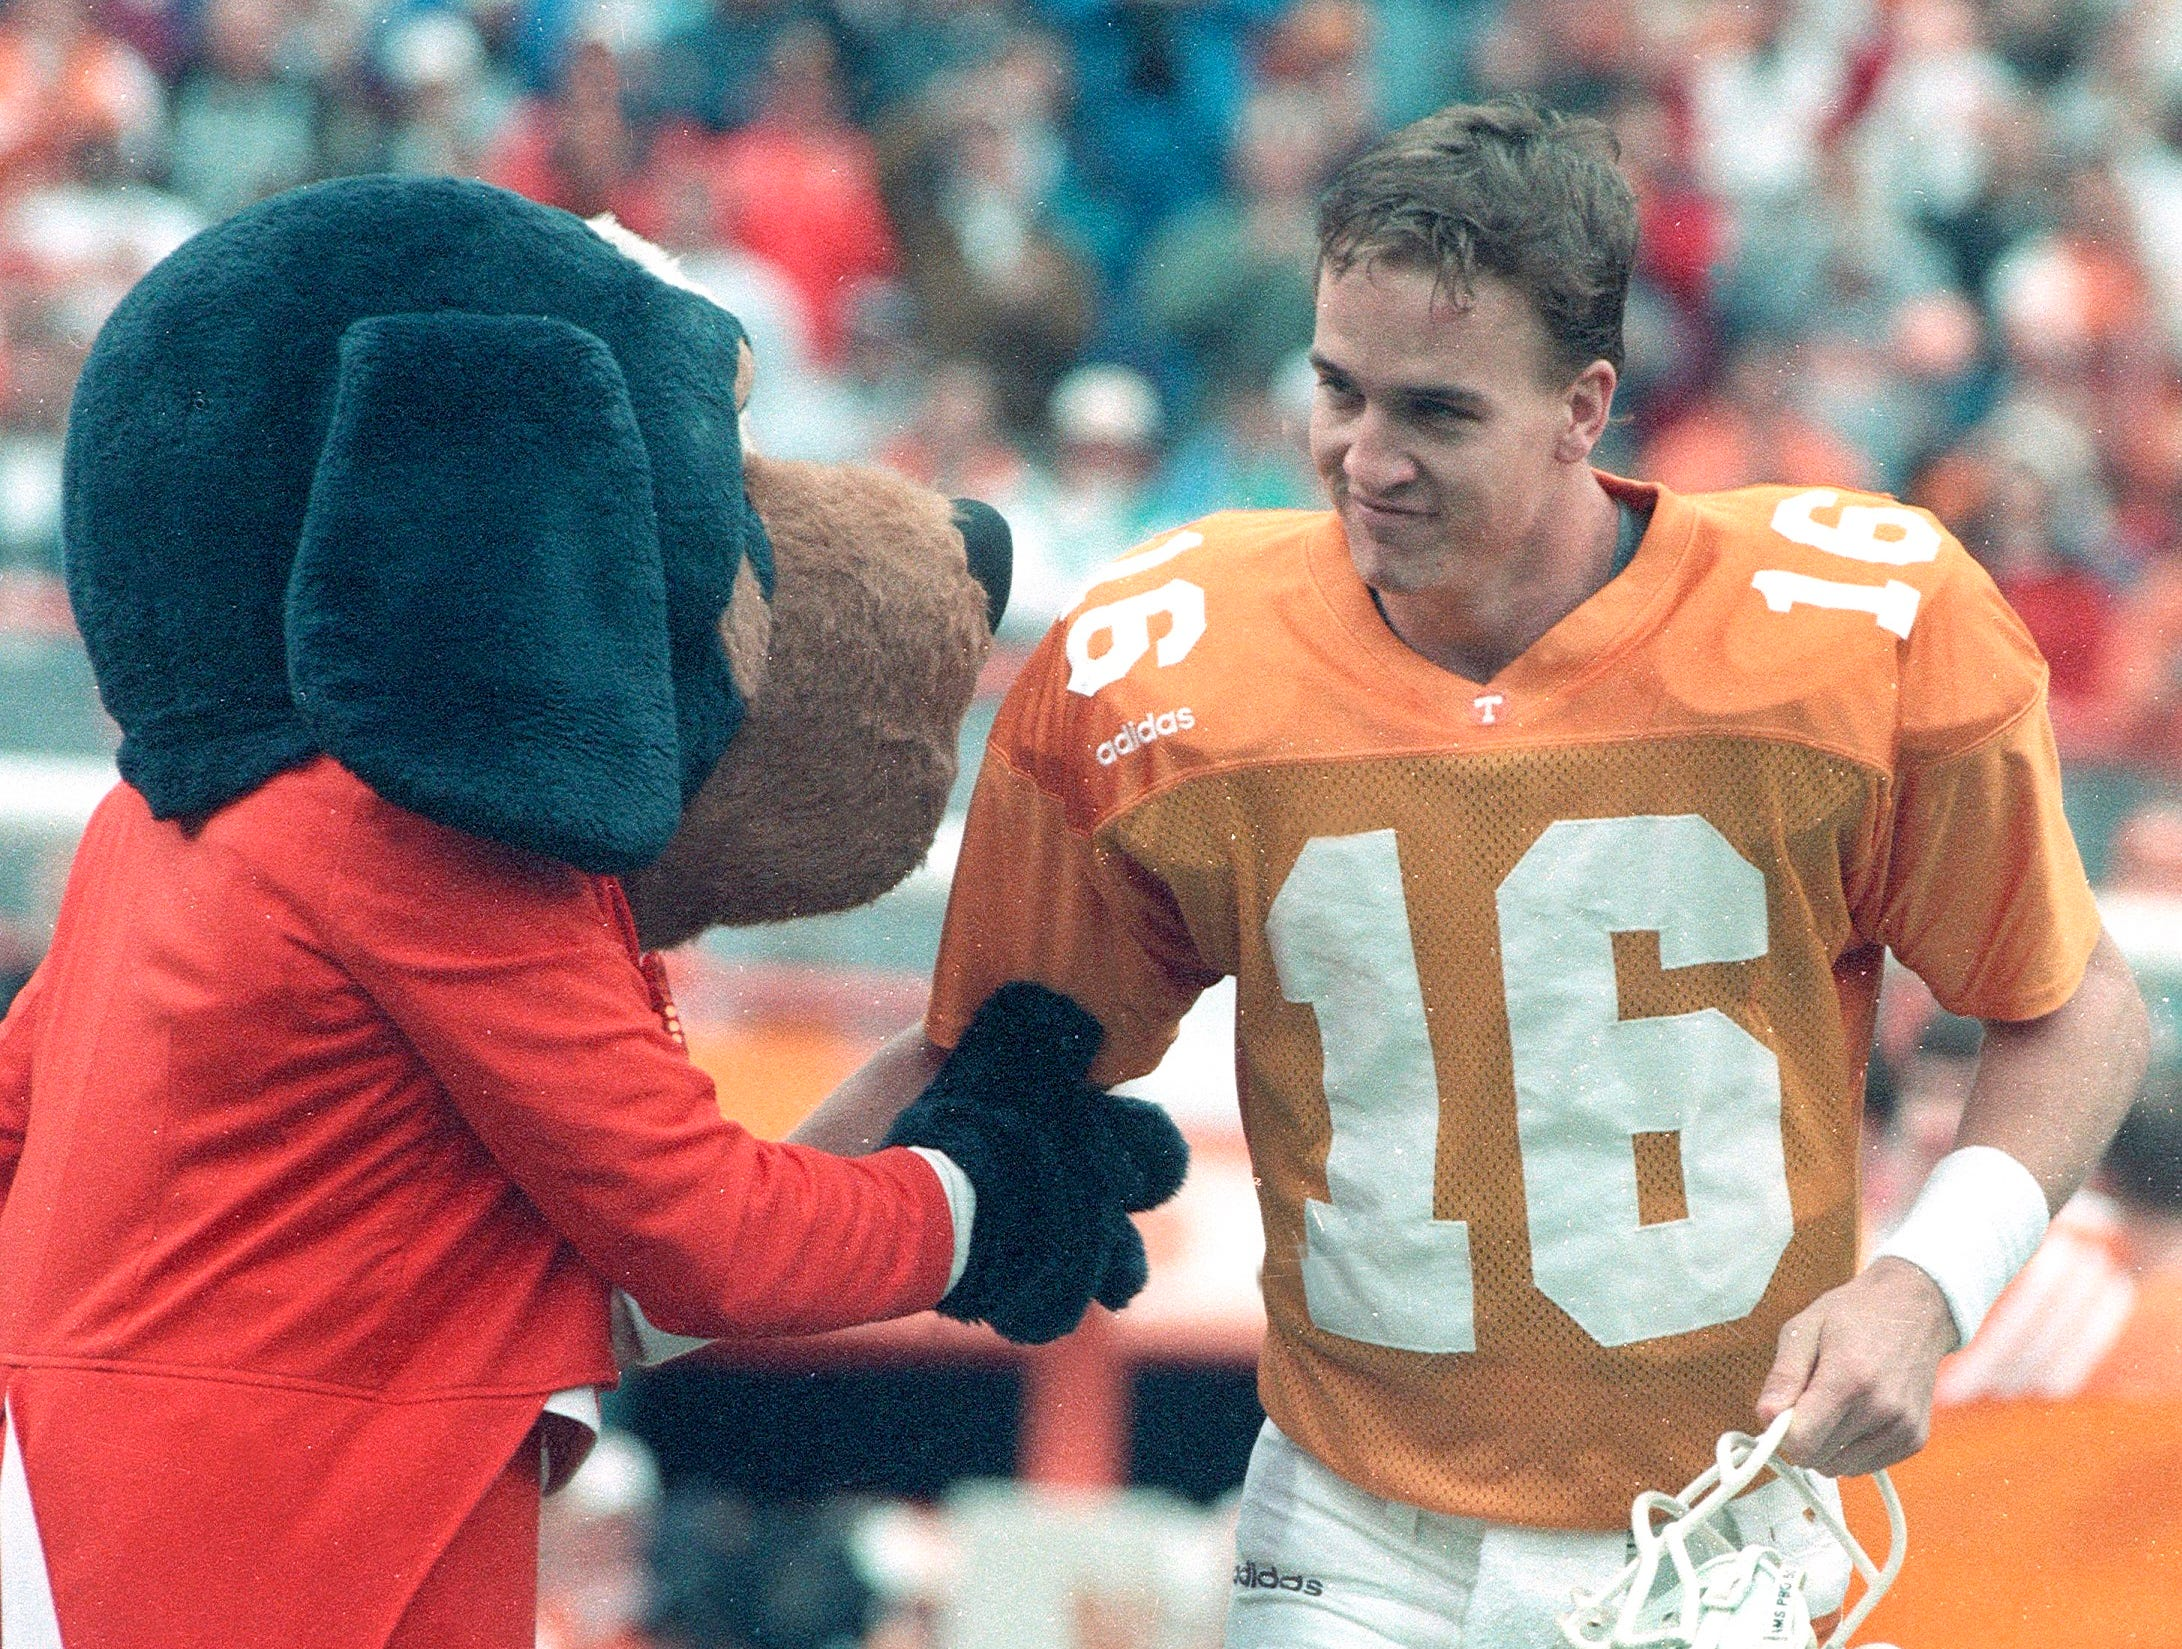 In a Nov. 29, 1997, photograph, Tennessee quarterback Peyton Manning greets Smokey before his final game at Neyland Stadium.